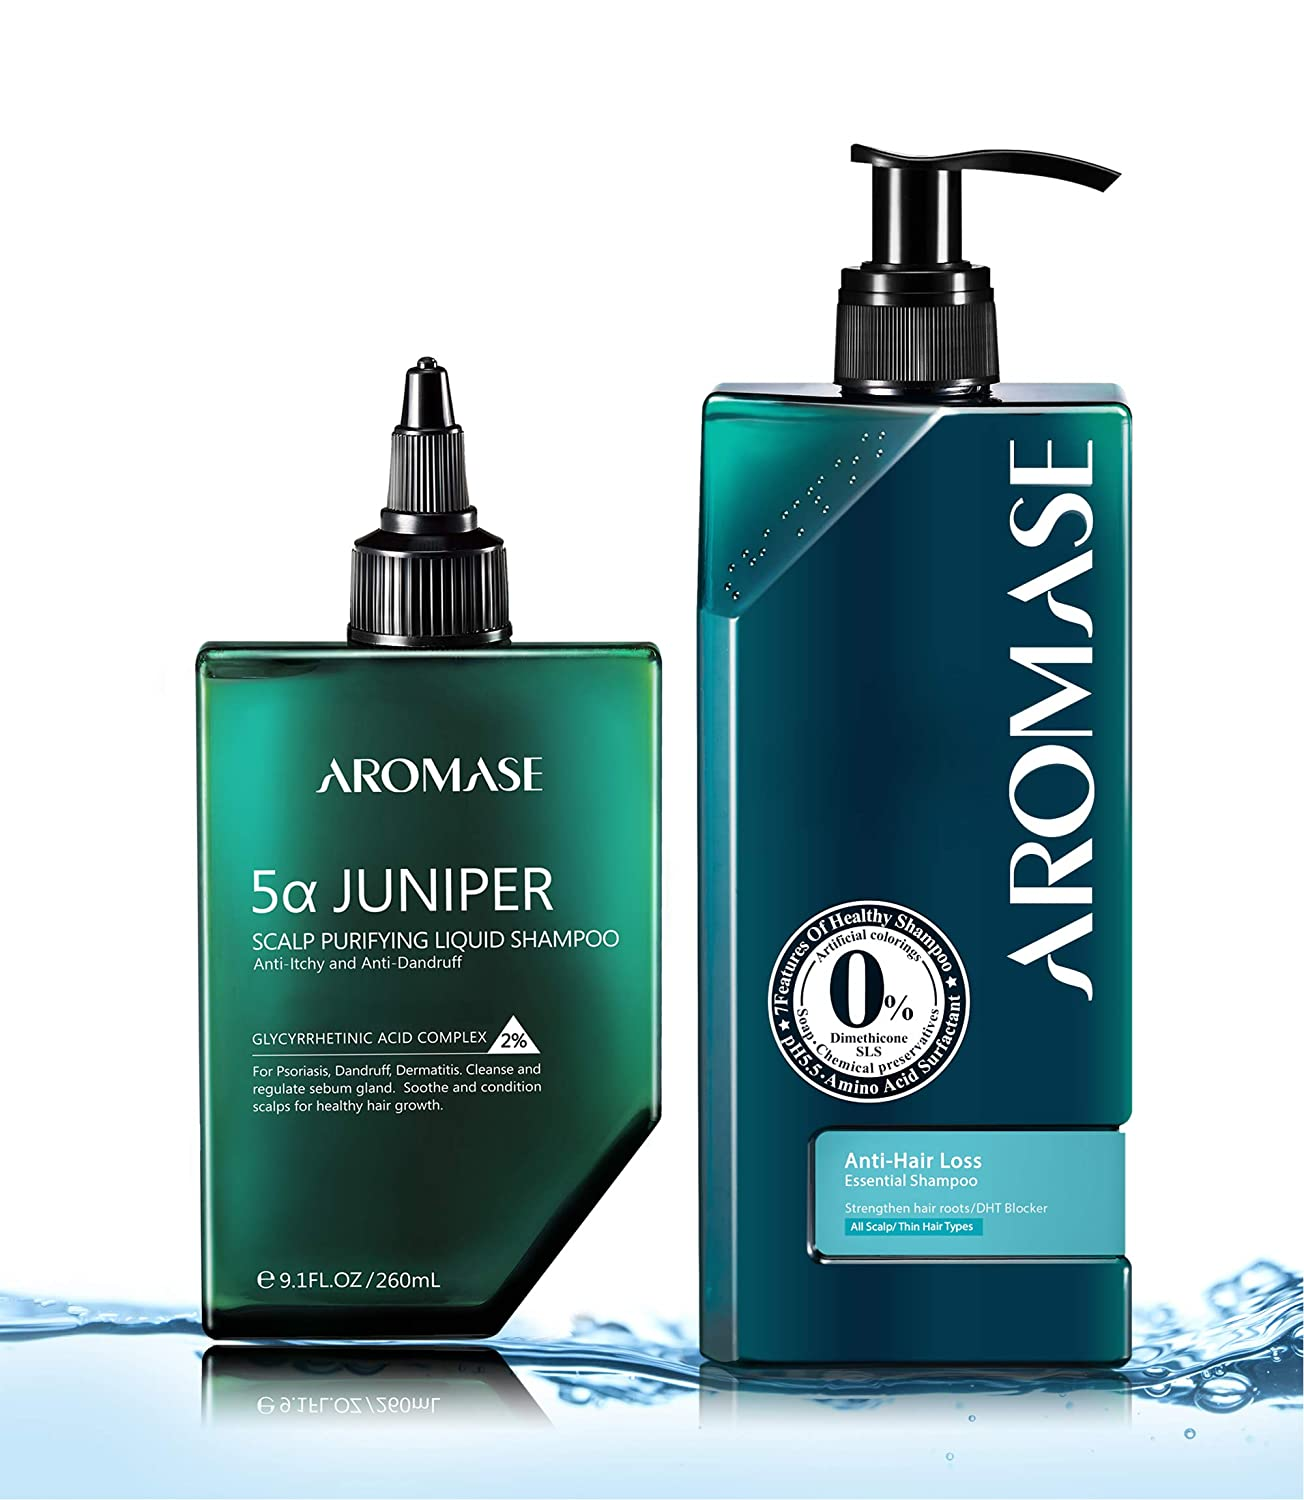 AROMASE Volumizing Essential Shampoo Kit for Thinning Hair with Natural DHT blocker 5α Avocuta, Scalp Deep Cleanser+Scalp Daily Care, Ideal for Oily, Thinning Hair, Men & Women ( 5α Juniper Scalp Purifying Liquid Shampoo 9.1 fl. oz.+ Hair Volumizing Essential Shampoo 14 fl. oz.)